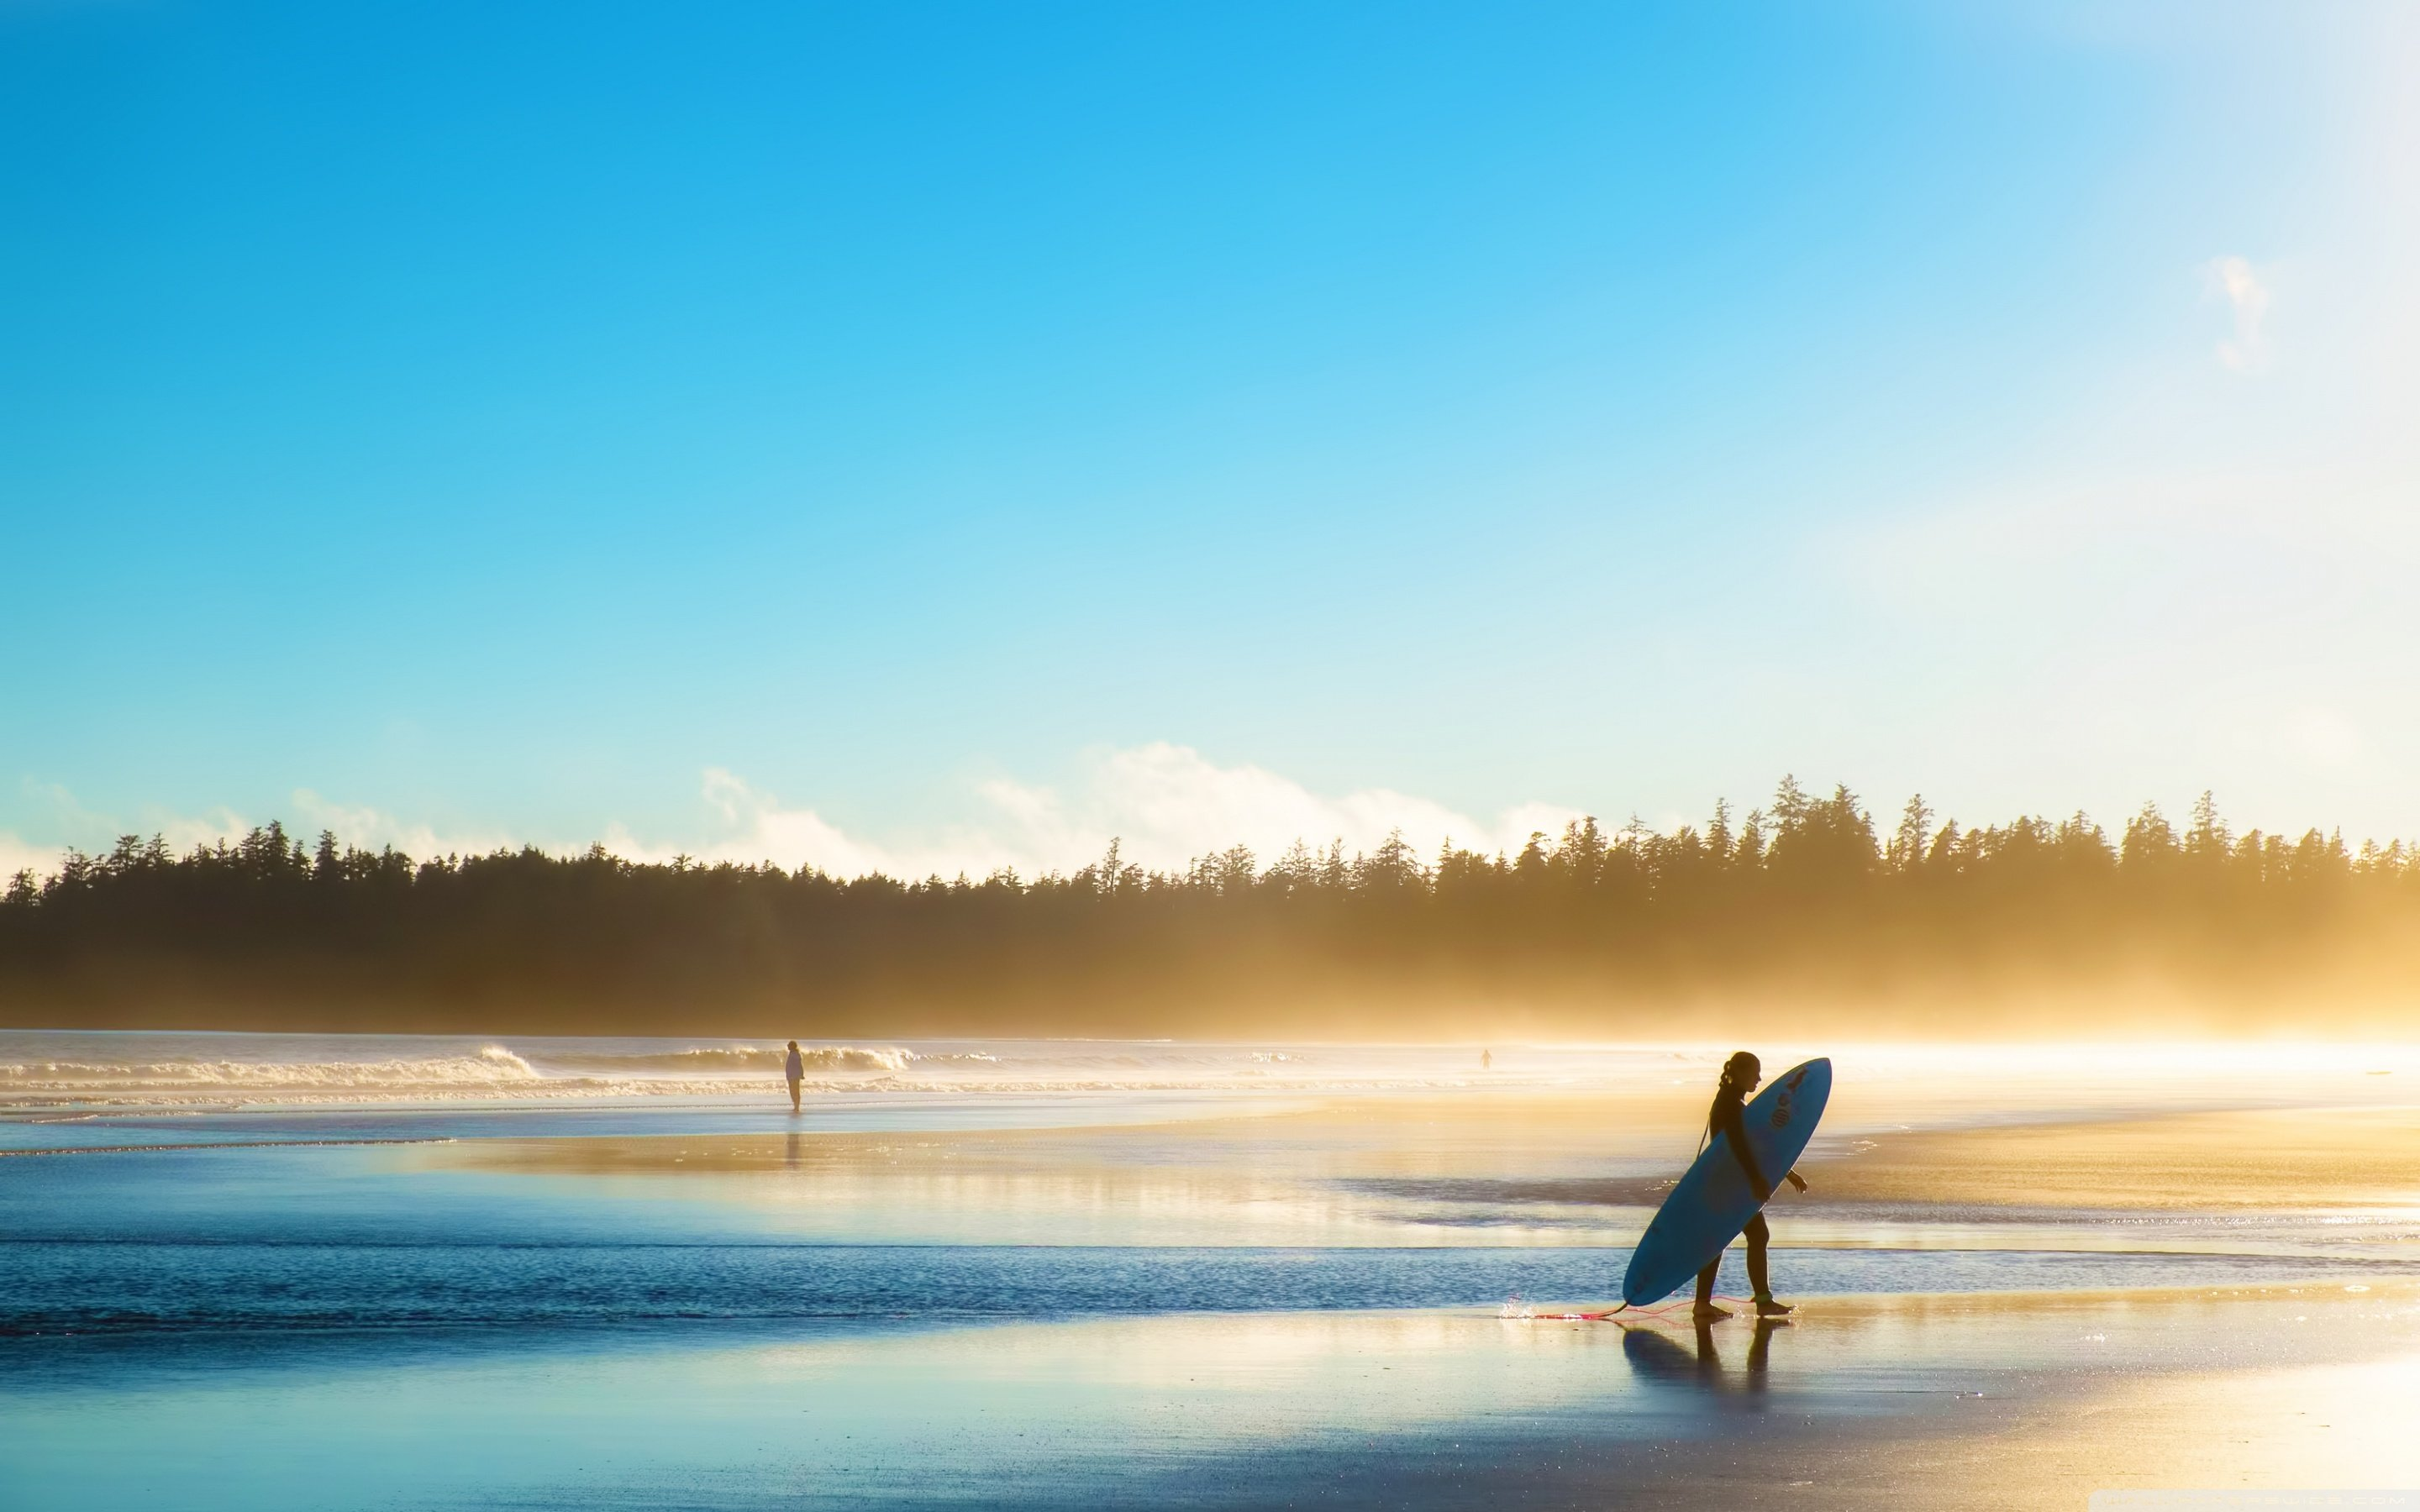 Surf Wallpaper Collection For Download 2880x1800